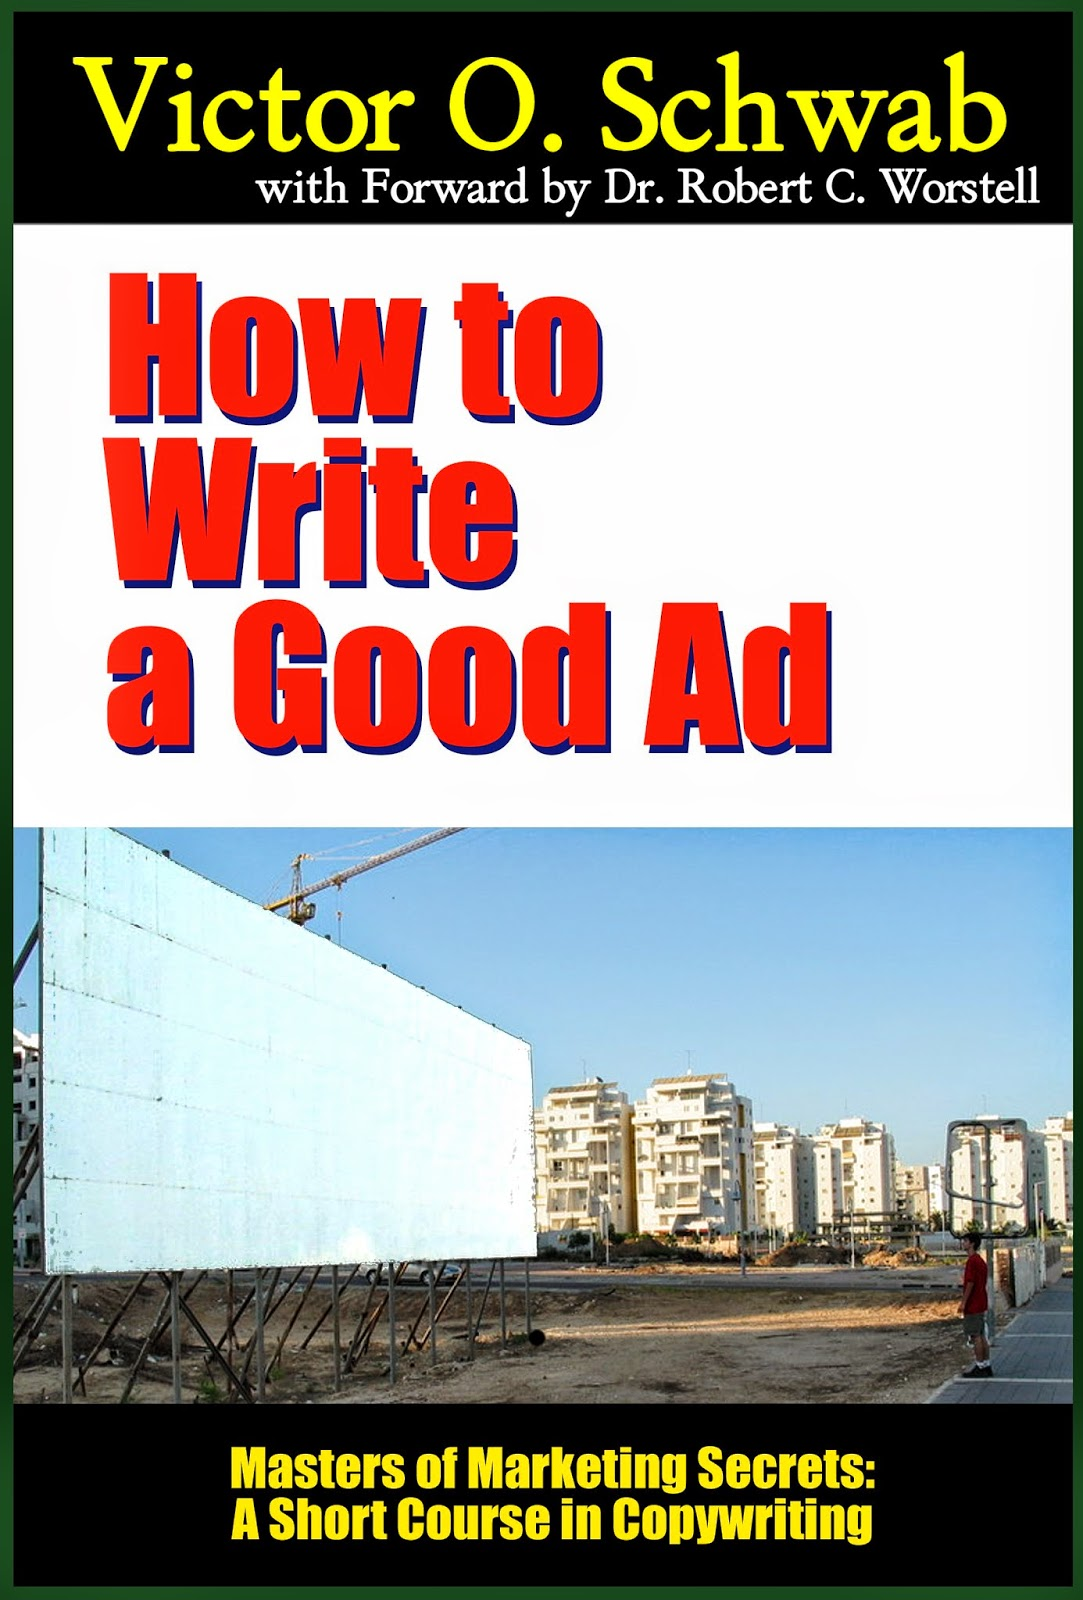 Victor O. Schwab's How to Write a Good Advertisement - Get Your Copy Today!